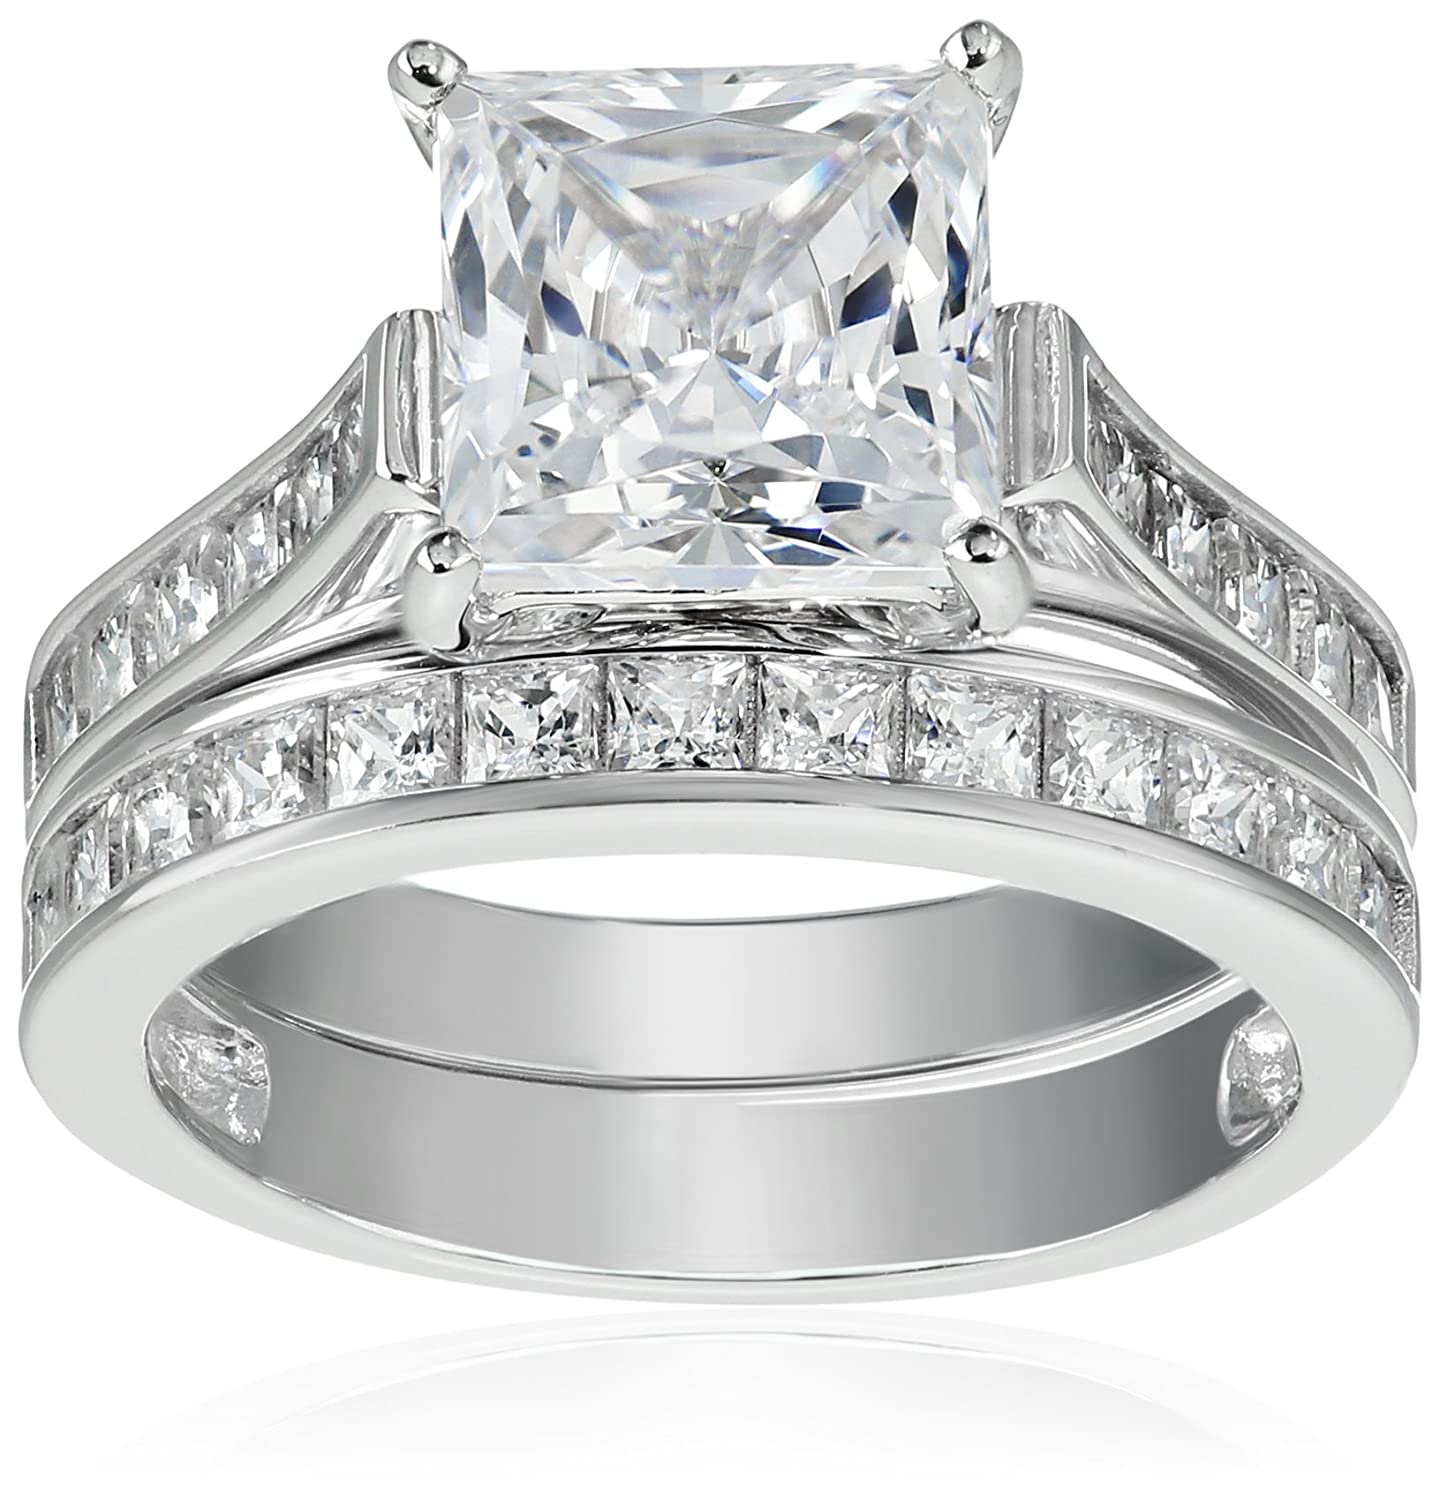 Sterling Silver Platinum-Plated Swarovski Zirconia Ring R2889000_120_060-Parent